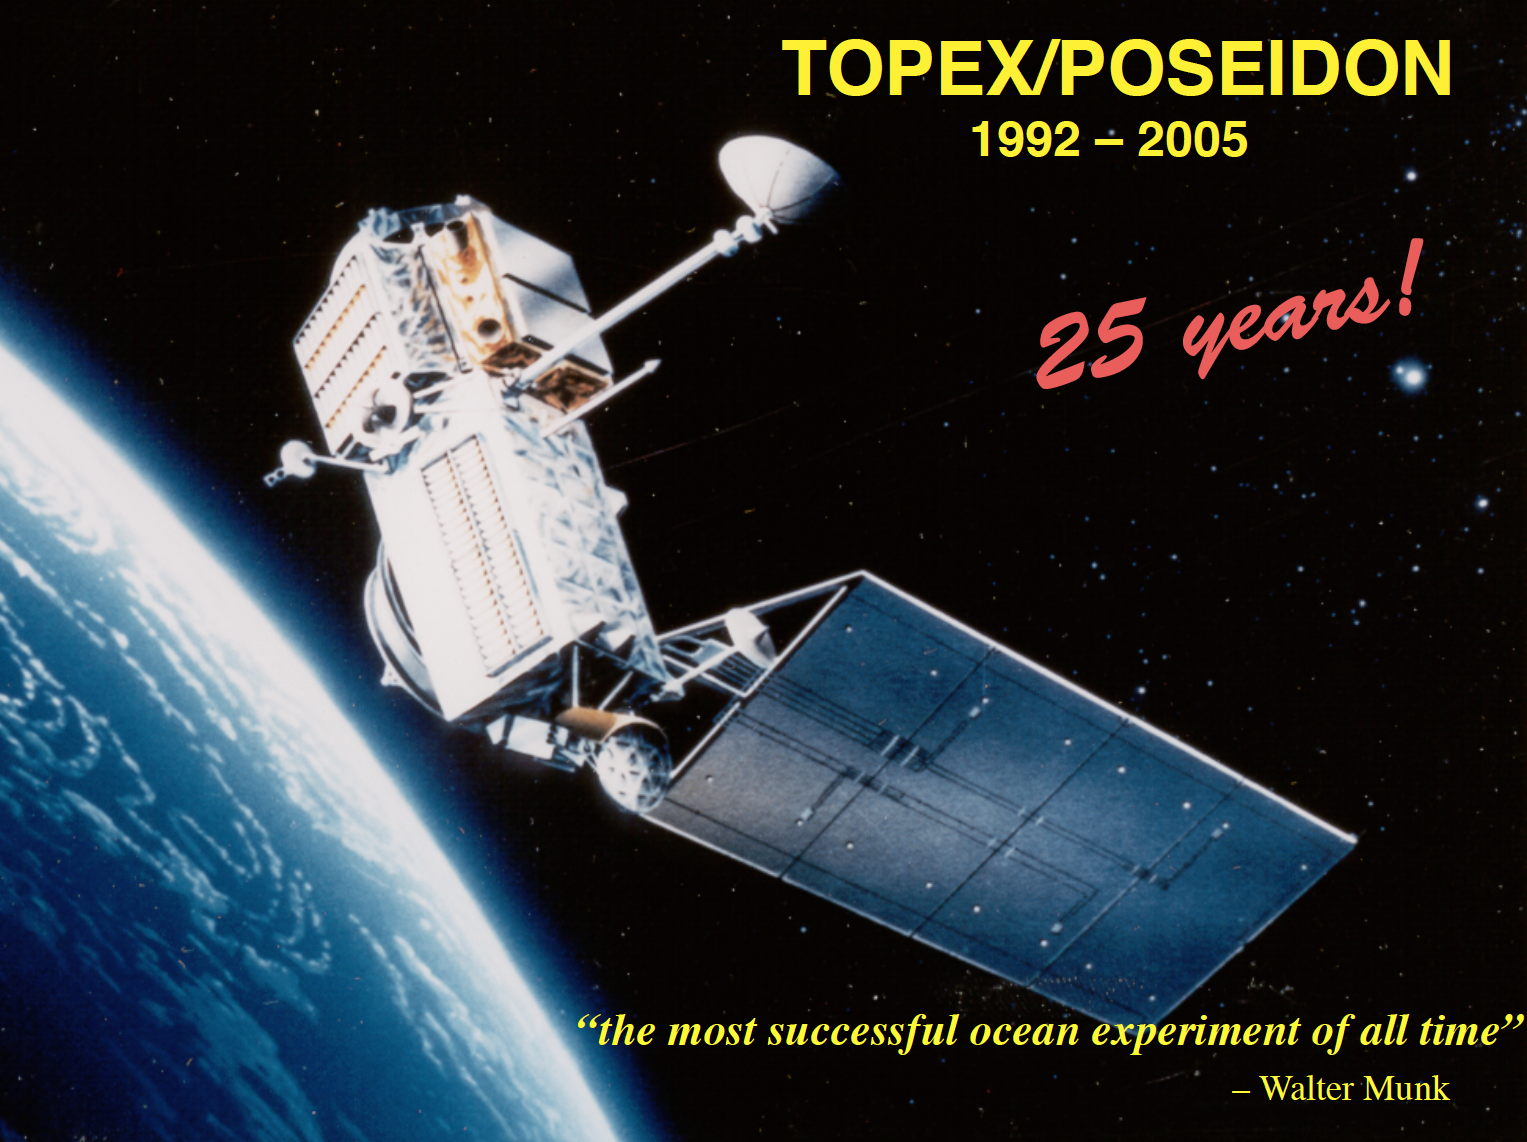 Poster Celebrating 25th Anniversary of TOPEX launch